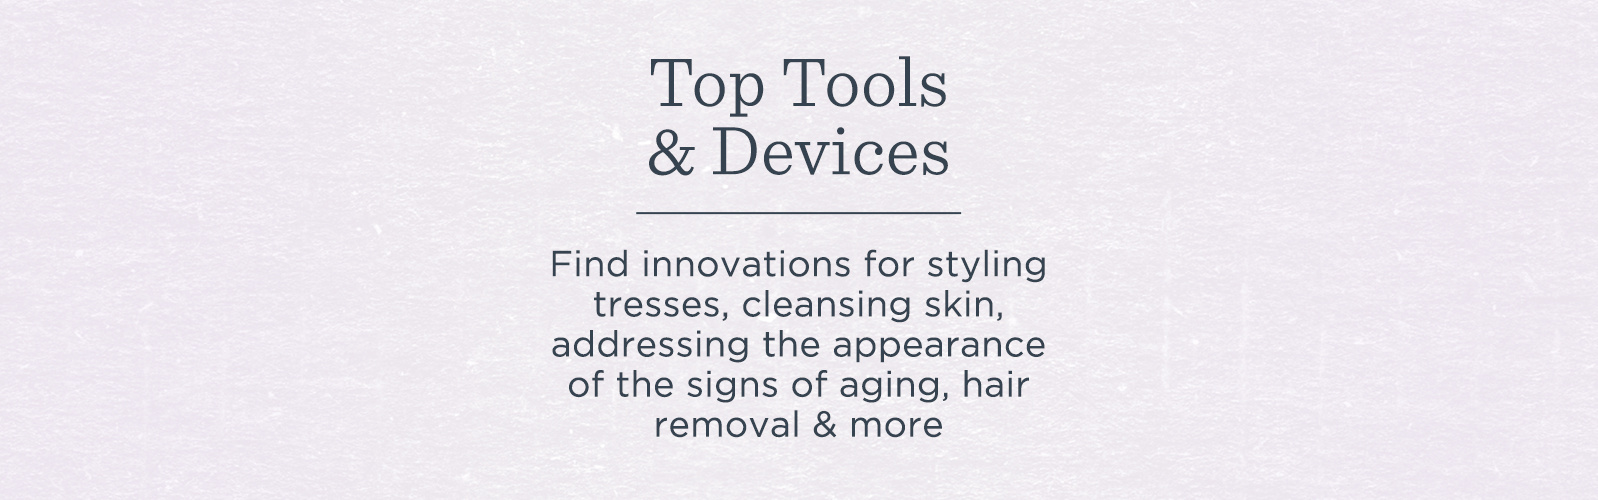 Top Tools & Devices. Find innovations for styling tresses, cleansing skin, addressing the appearance of the signs of aging, hair removal & more